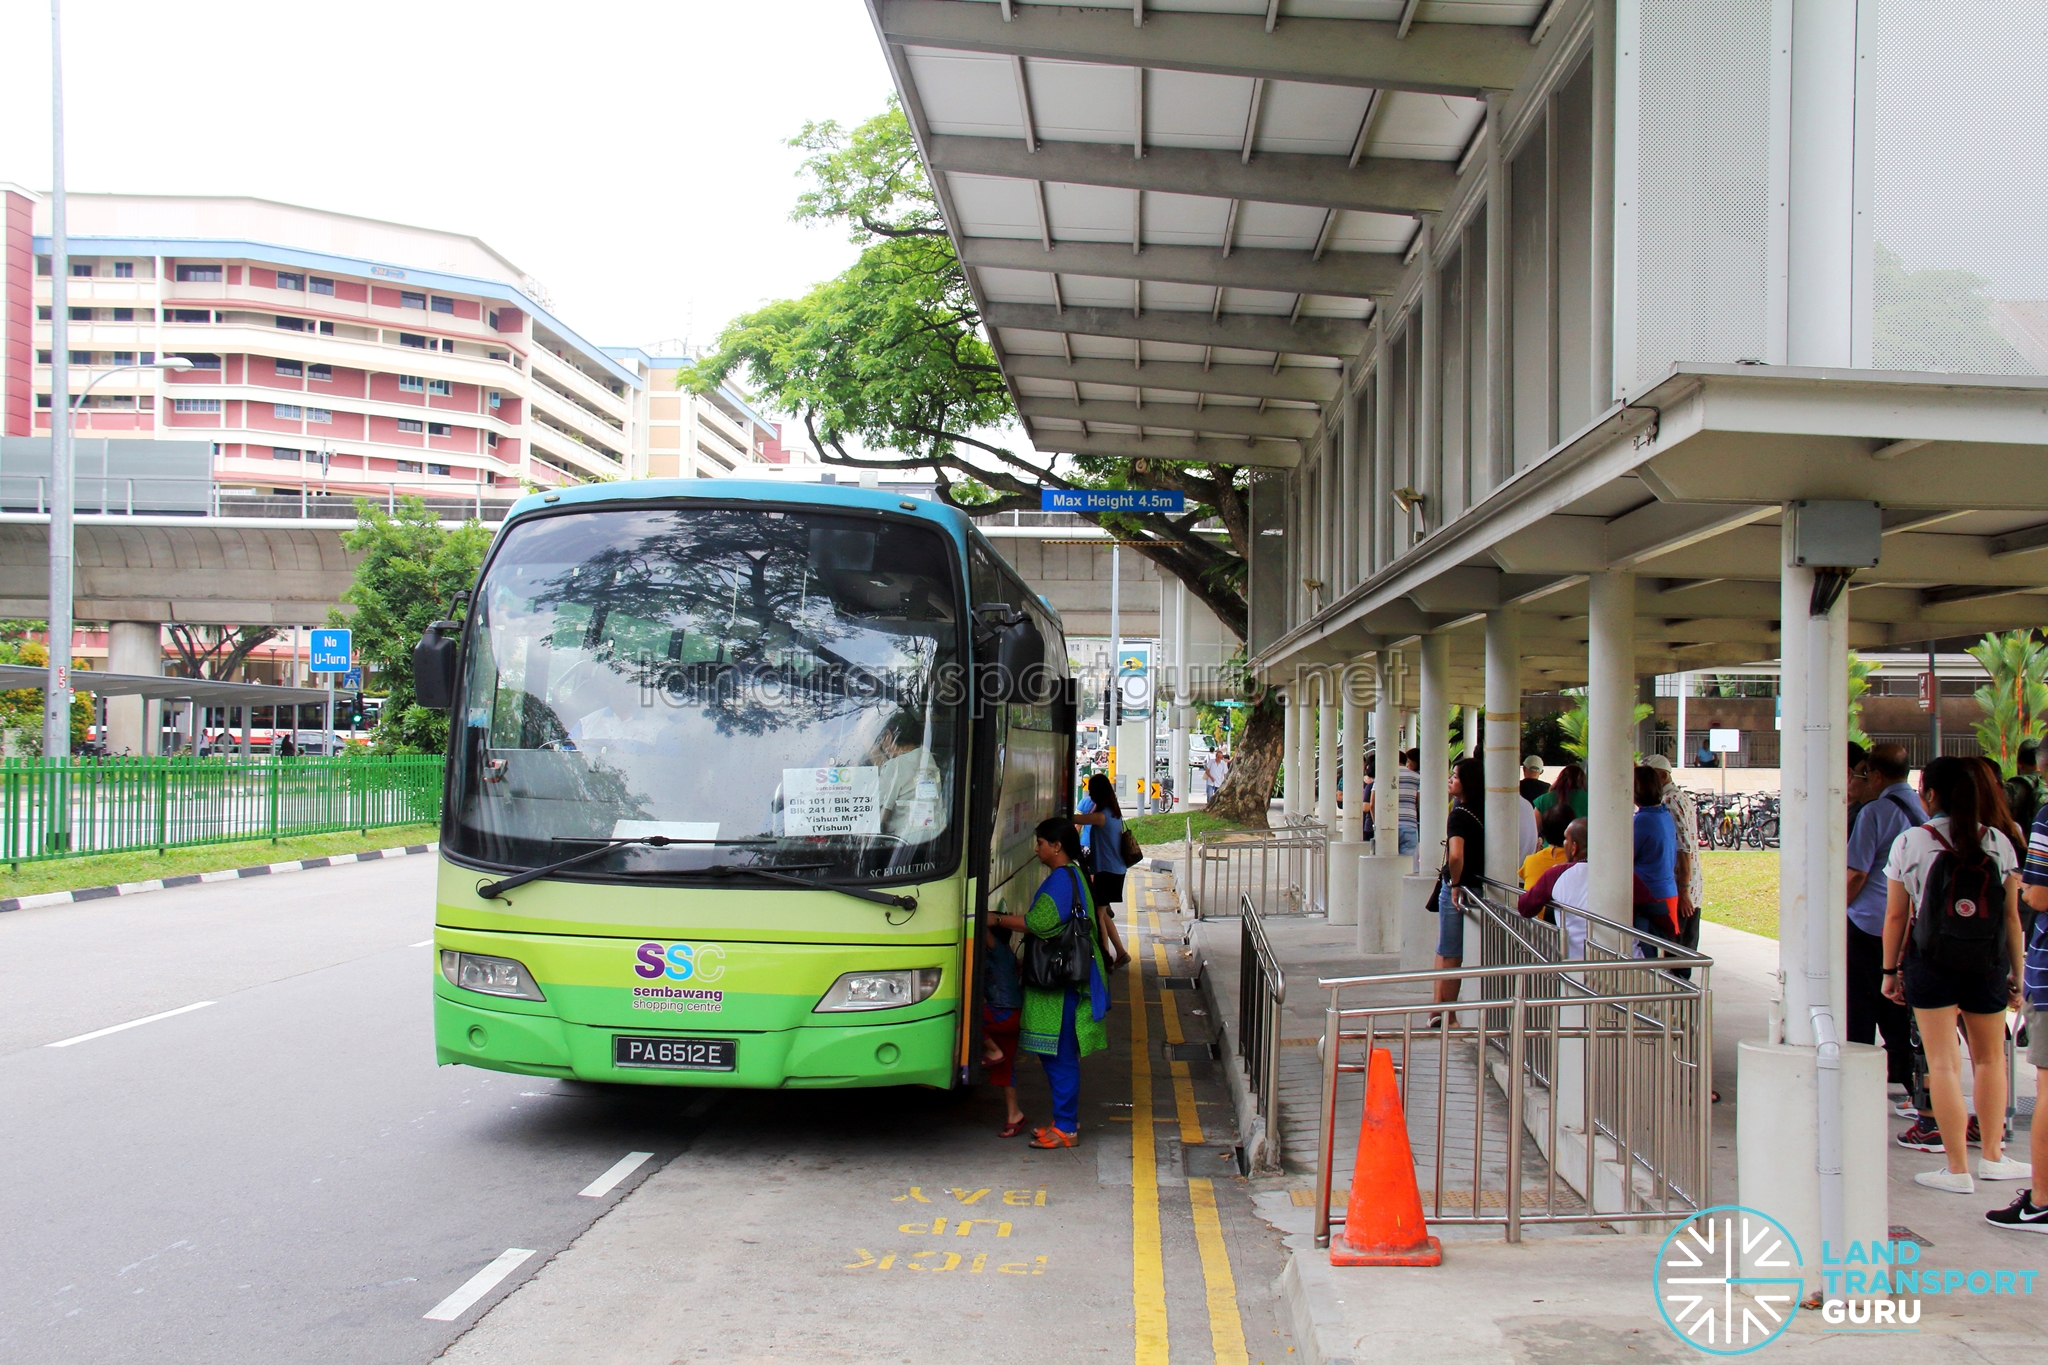 Sembawang Shopping Centre Shuttle Bus Services | Land